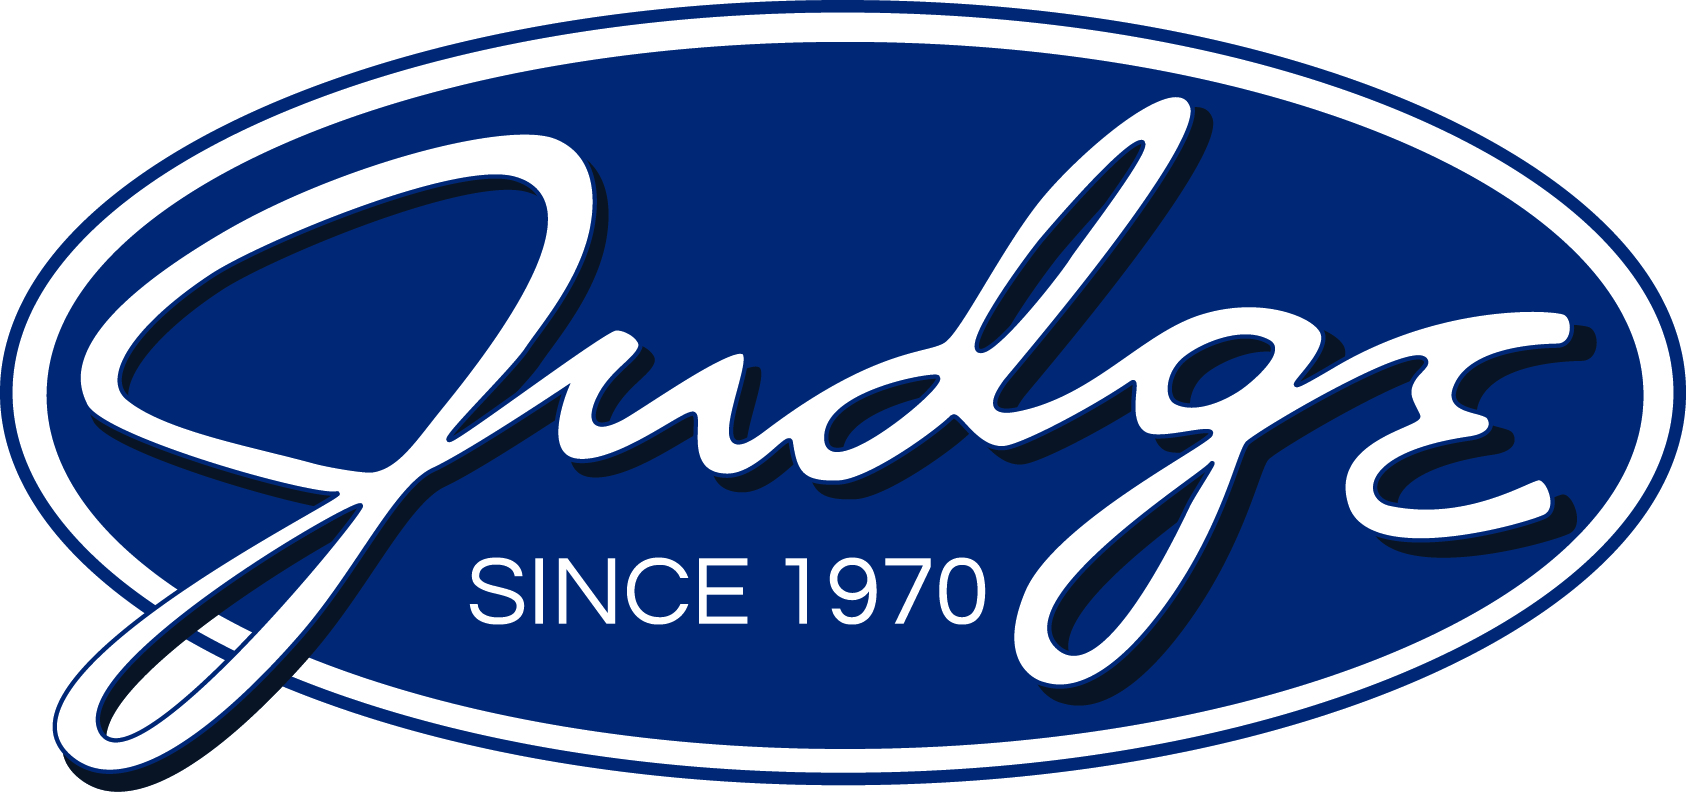 Judge LOGO Oval